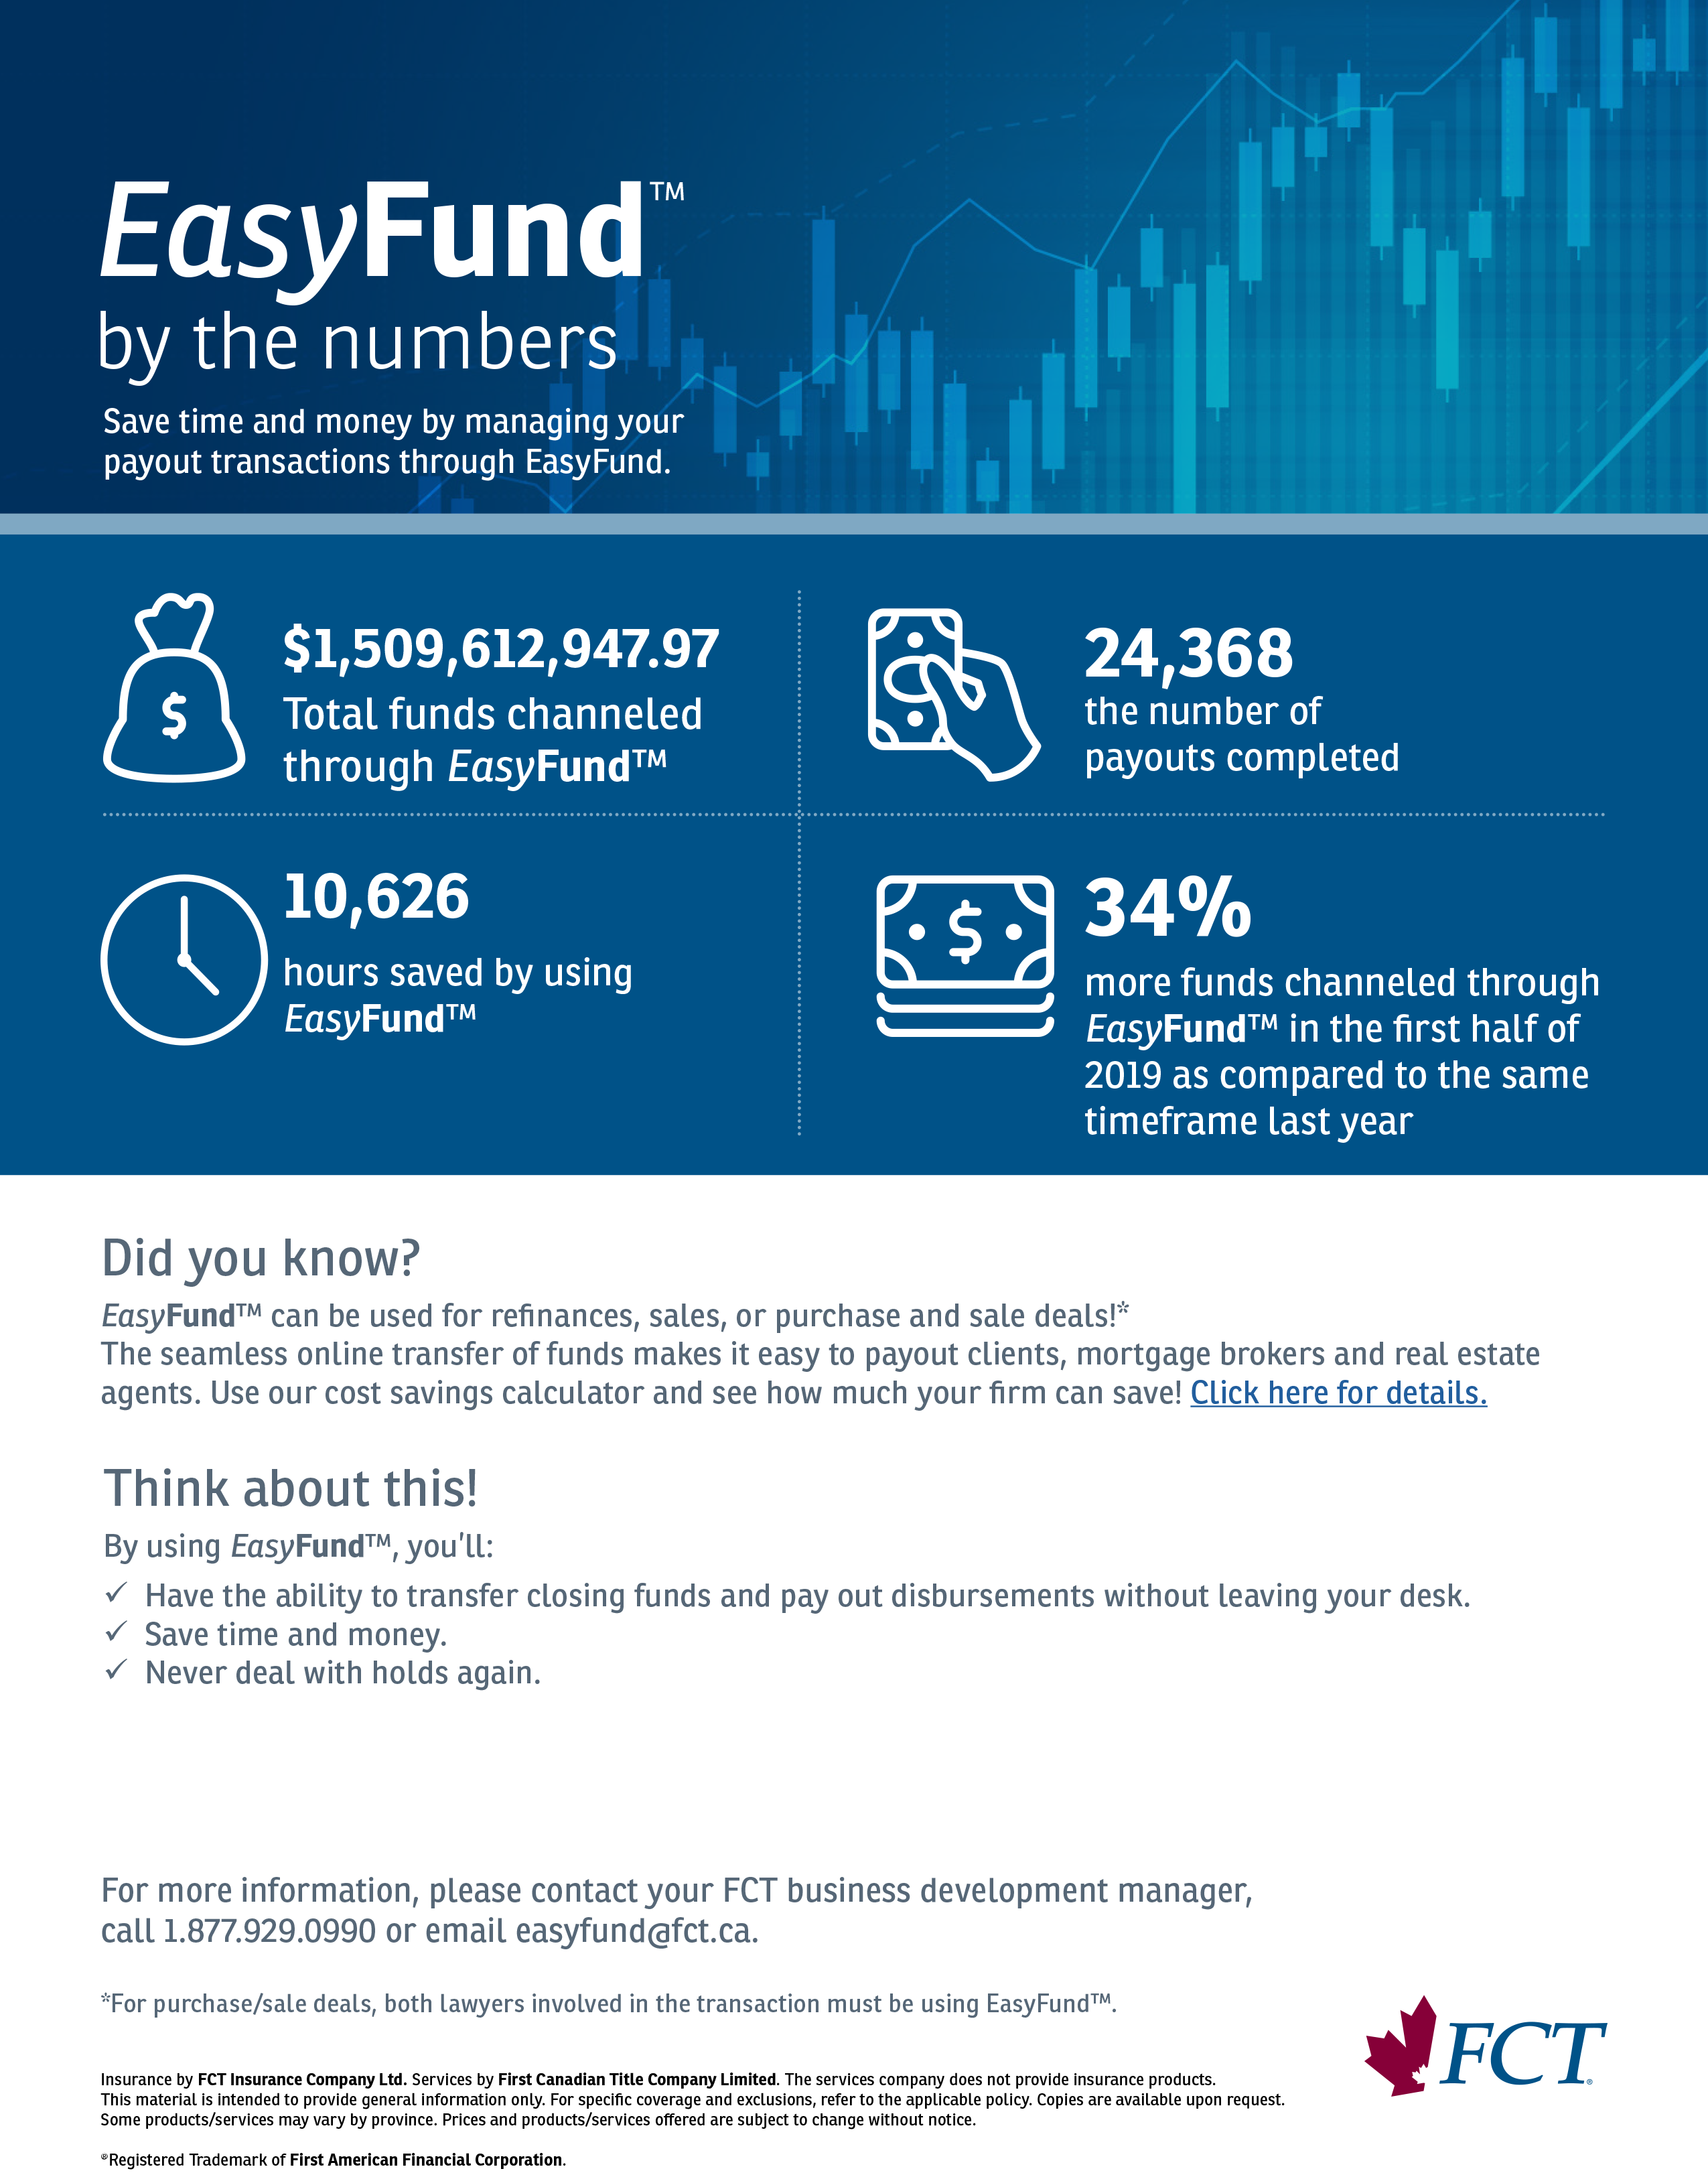 EasyFund by the numbers